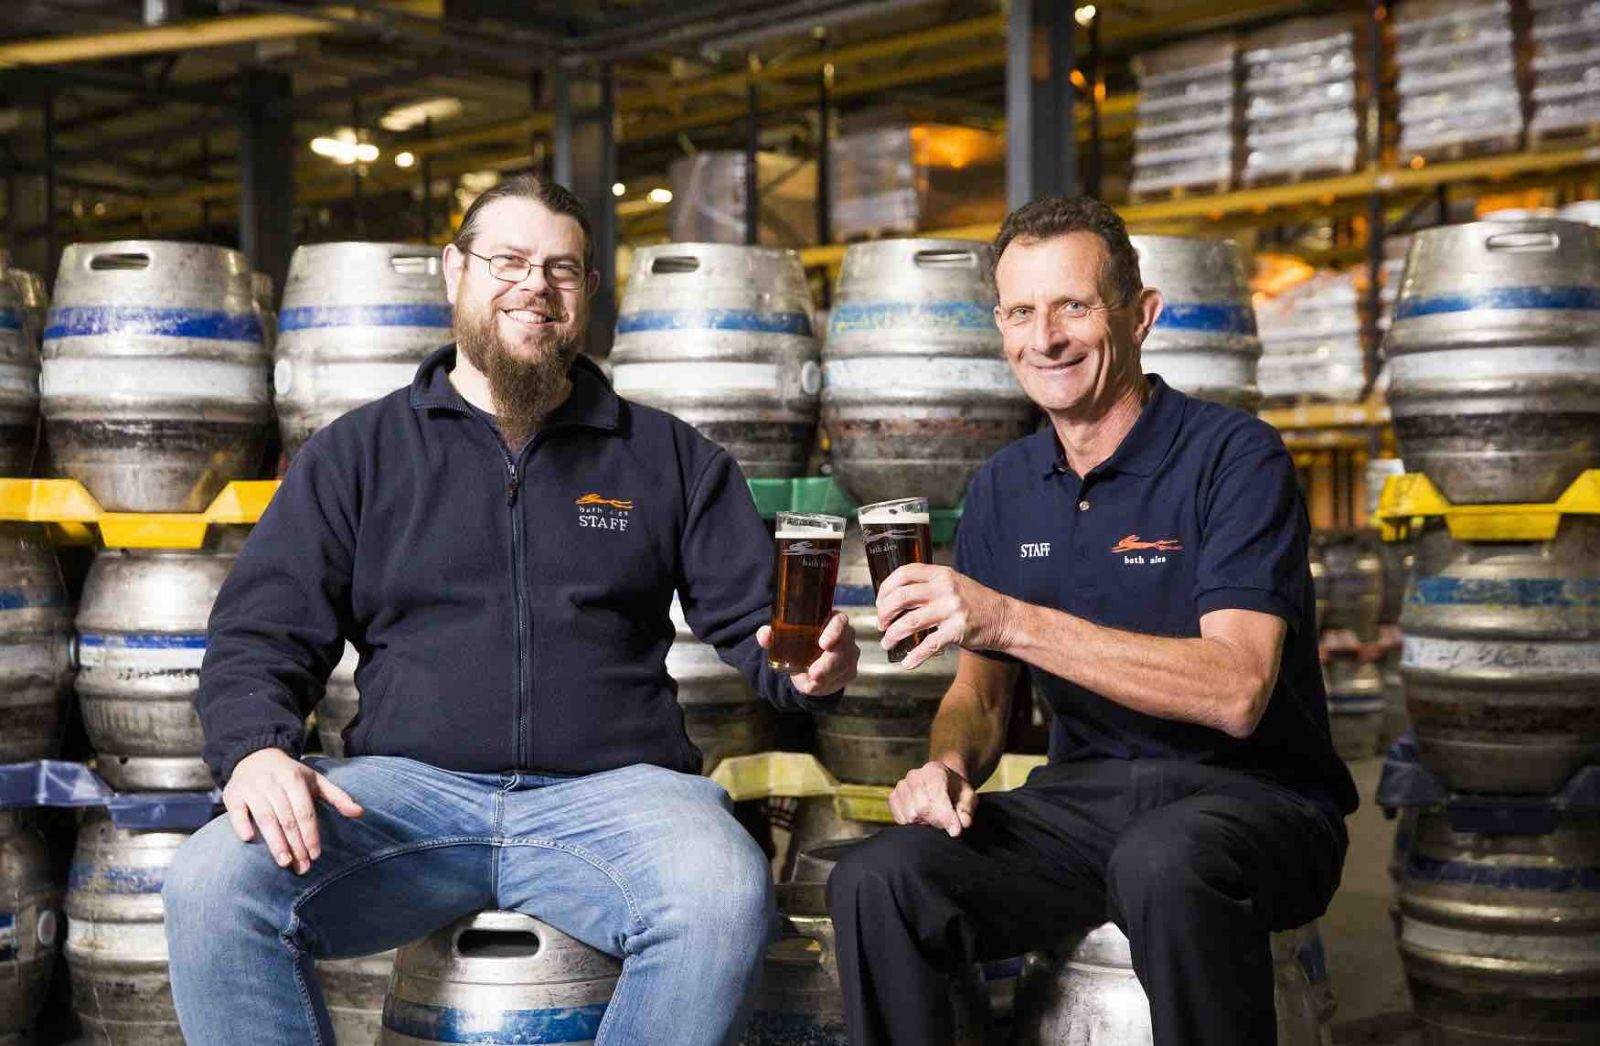 A multi-million pound investment can only mean great things for ale drinkers in Bristol